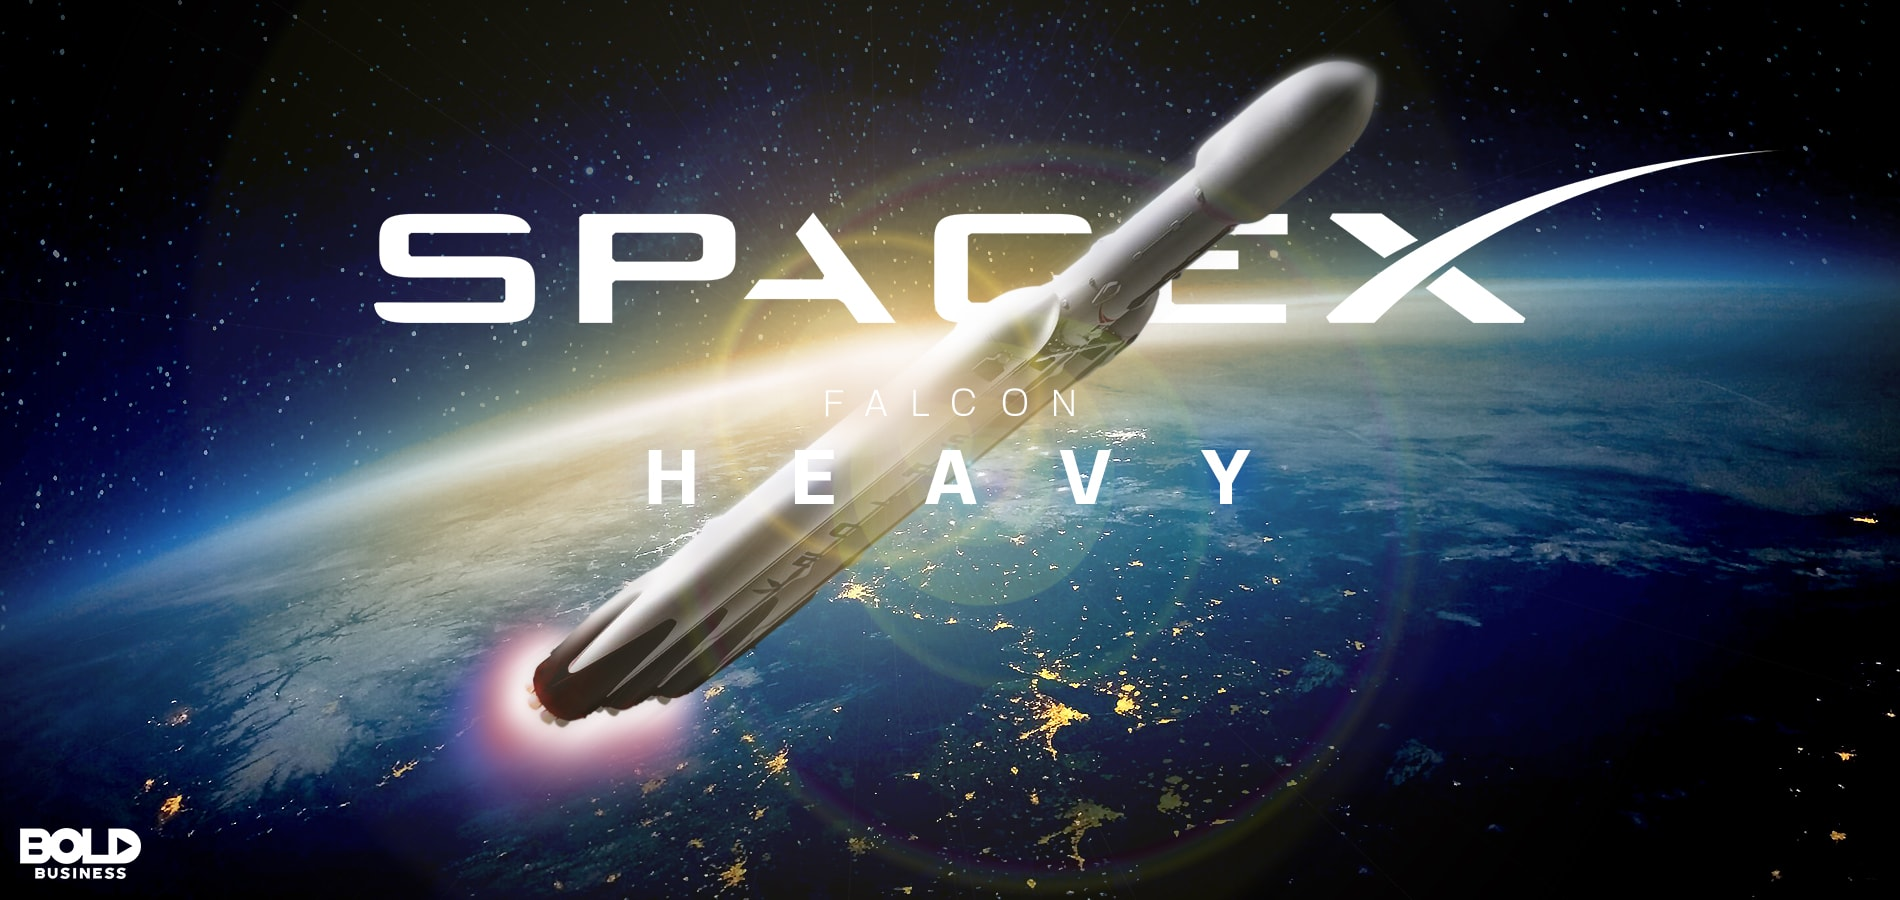 image of falcon heavy rocket in space